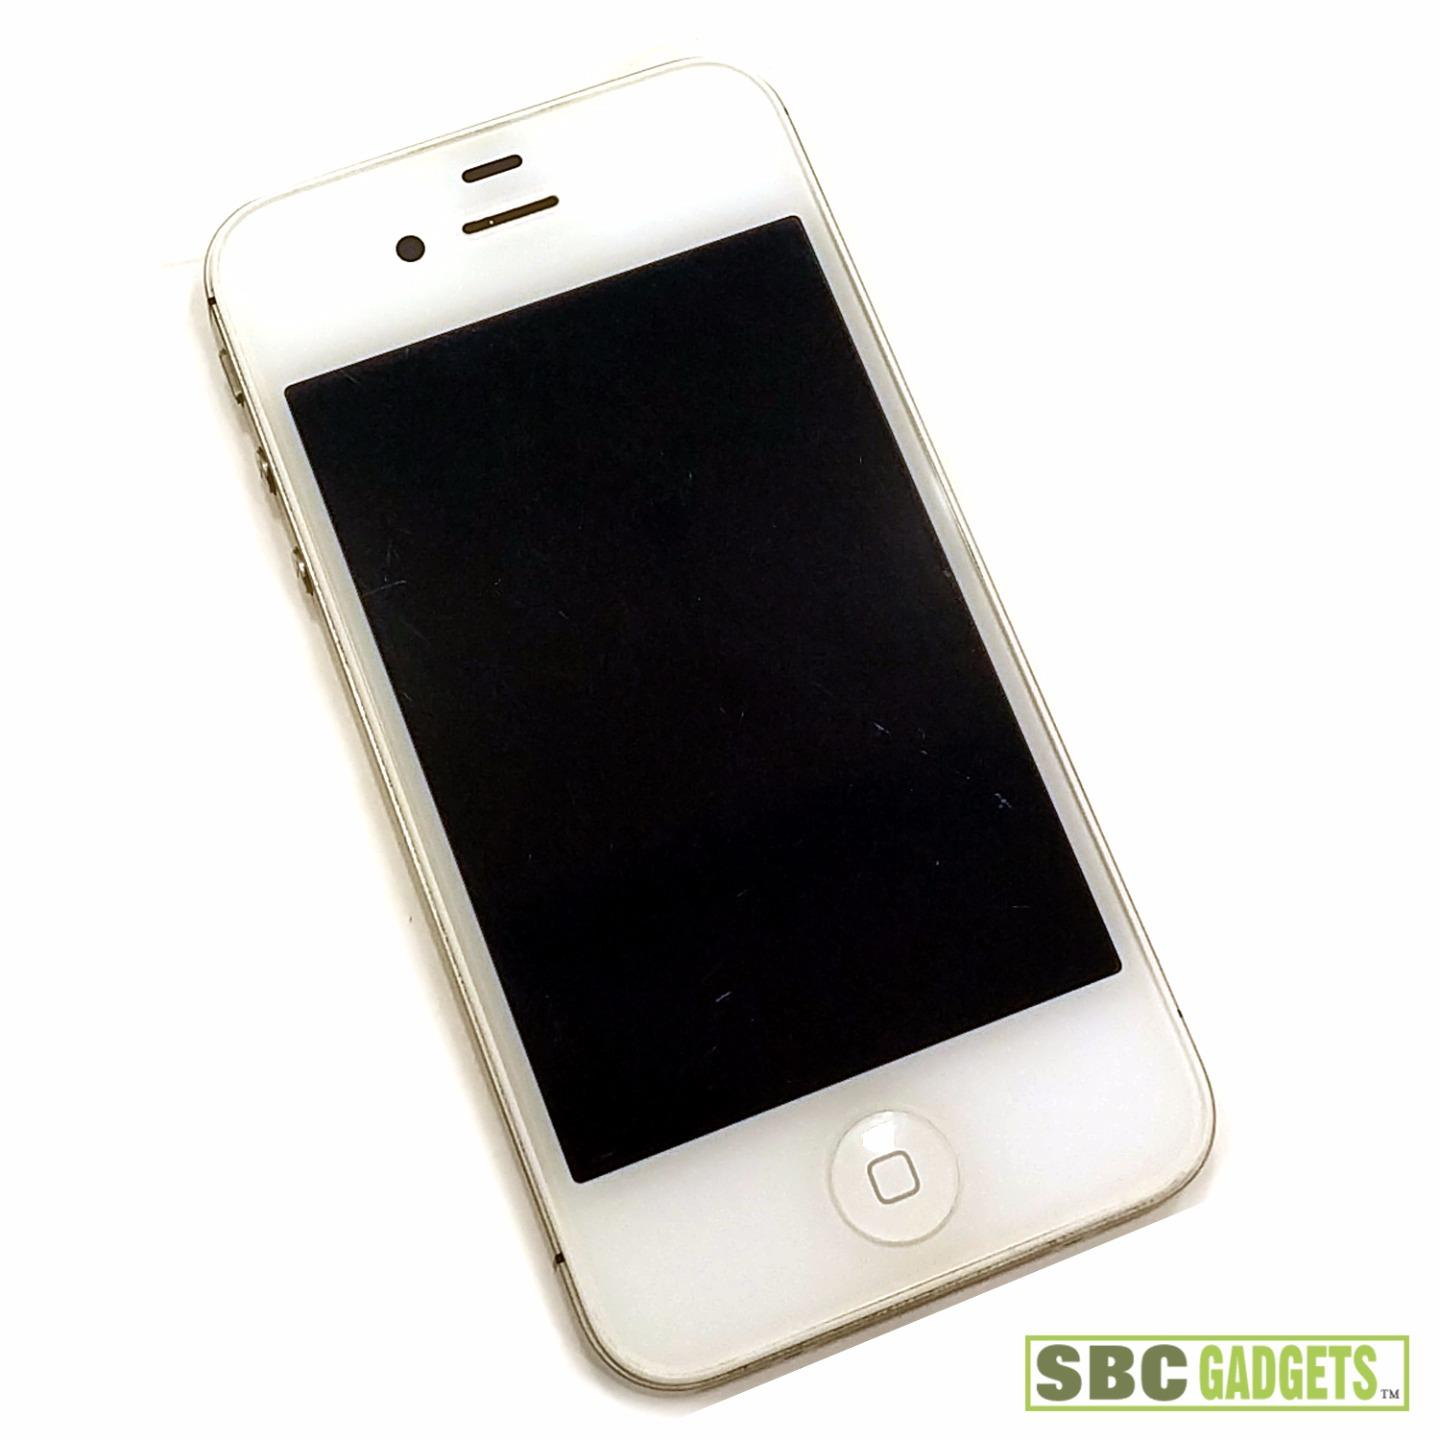 model a1387 iphone for parts apple iphone 4s white blue screen failure 12643